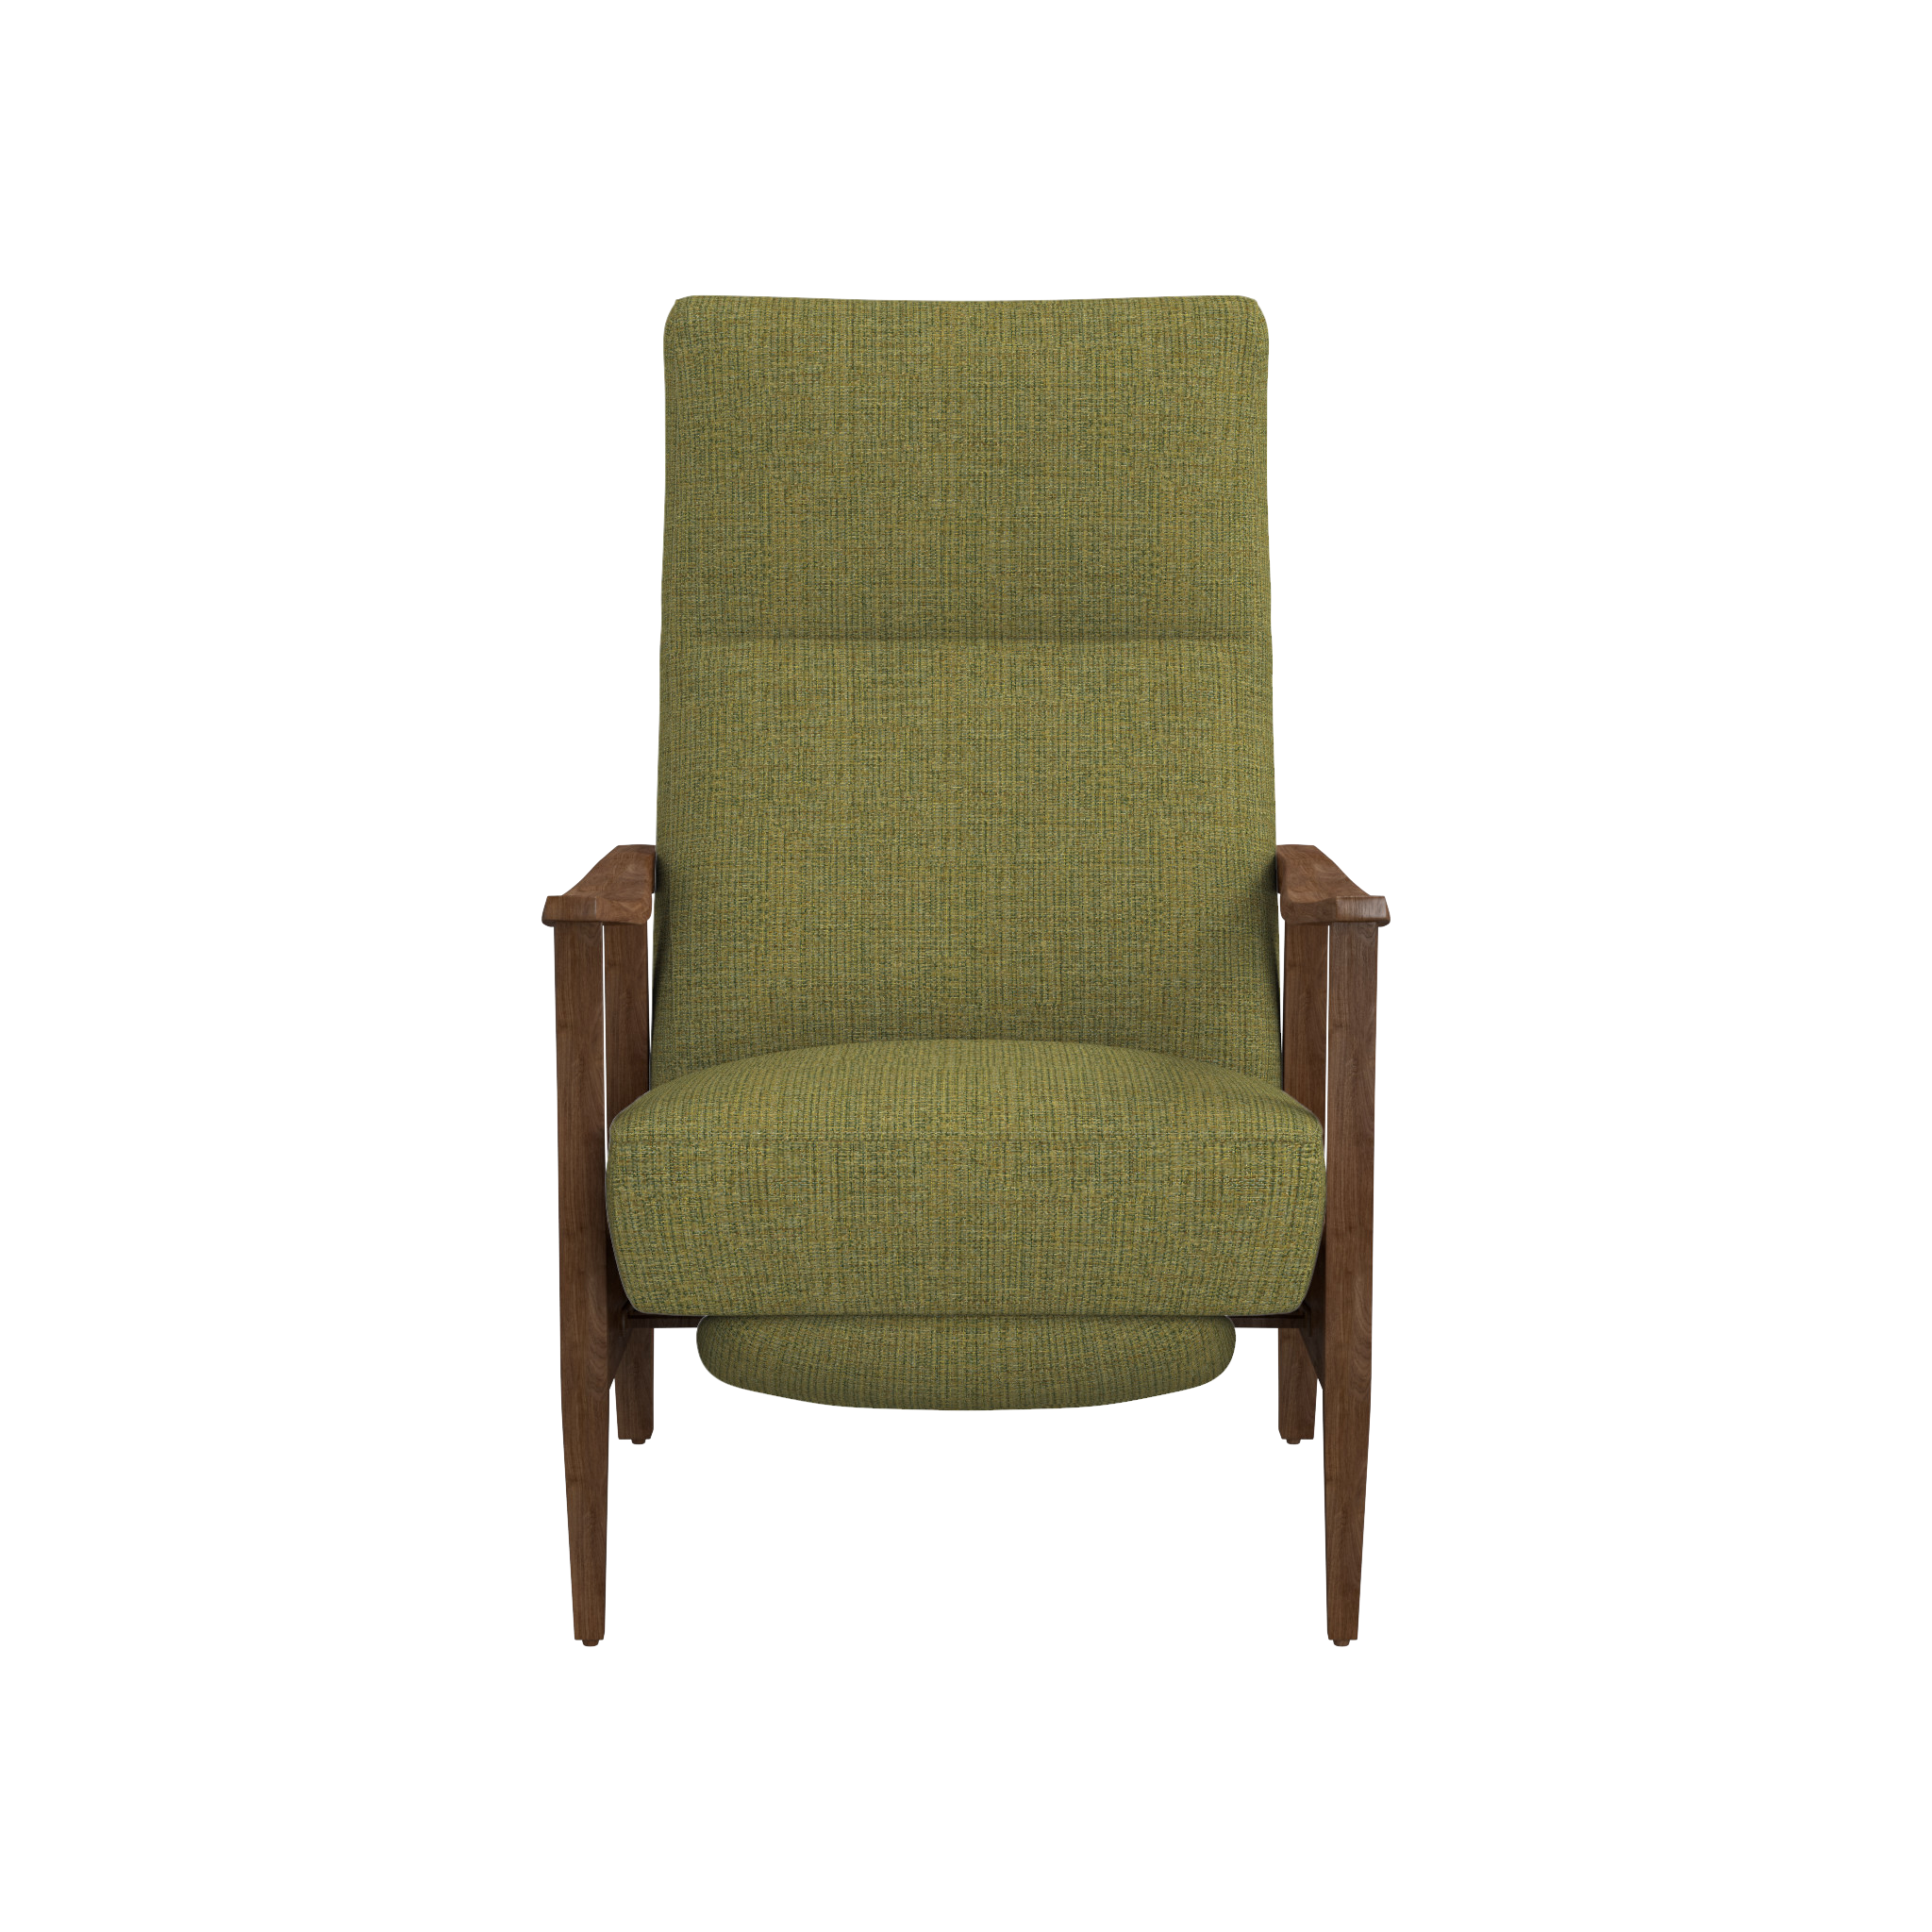 pop up recliner chairs luxury office melbourne greer fabric wood arm in 2018 funk it living room shop mid century this clean classic chair relaxes you back three position comfort with a deep angled seat cushioned headrest